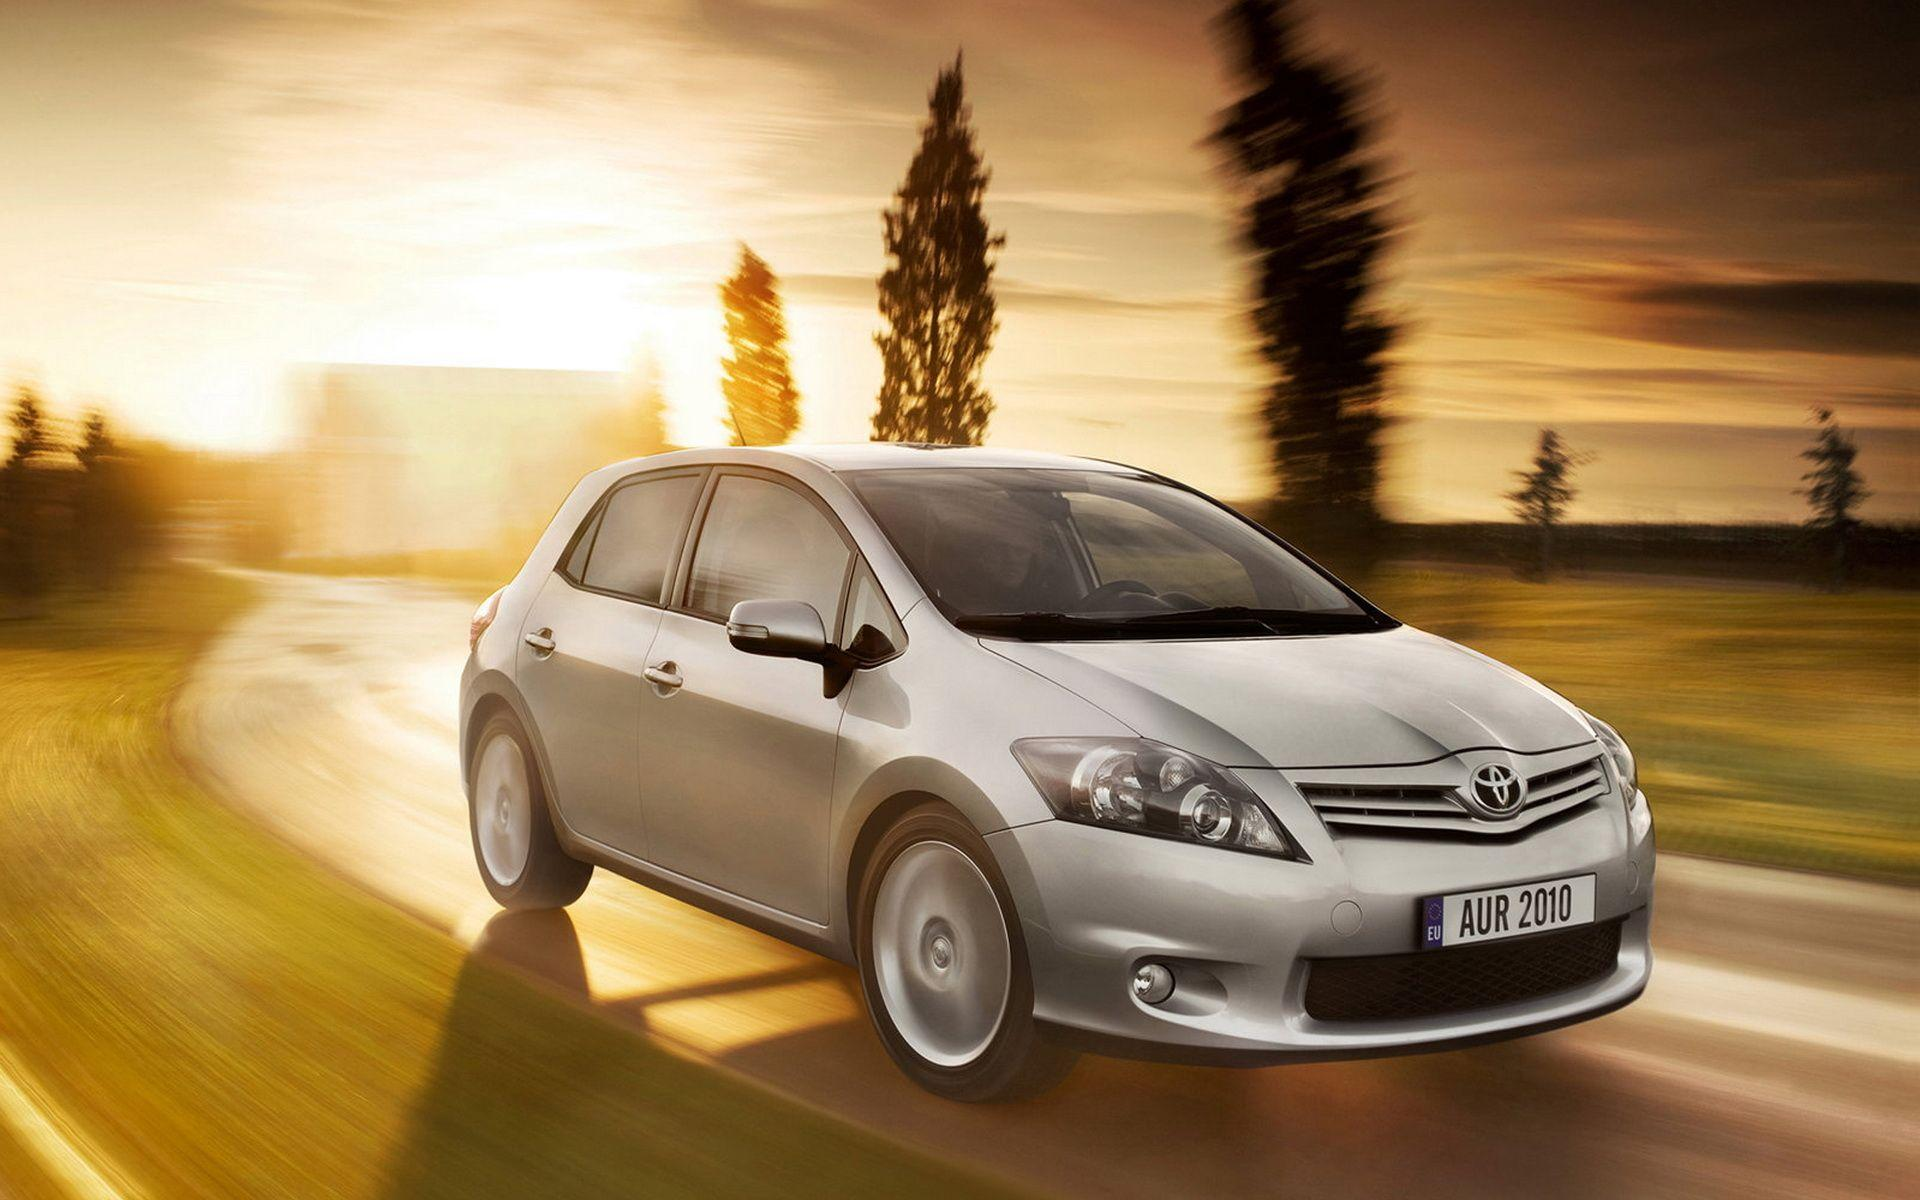 Toyota Auris Wallpapers, Fine HDQ Toyota Auris Backgrounds